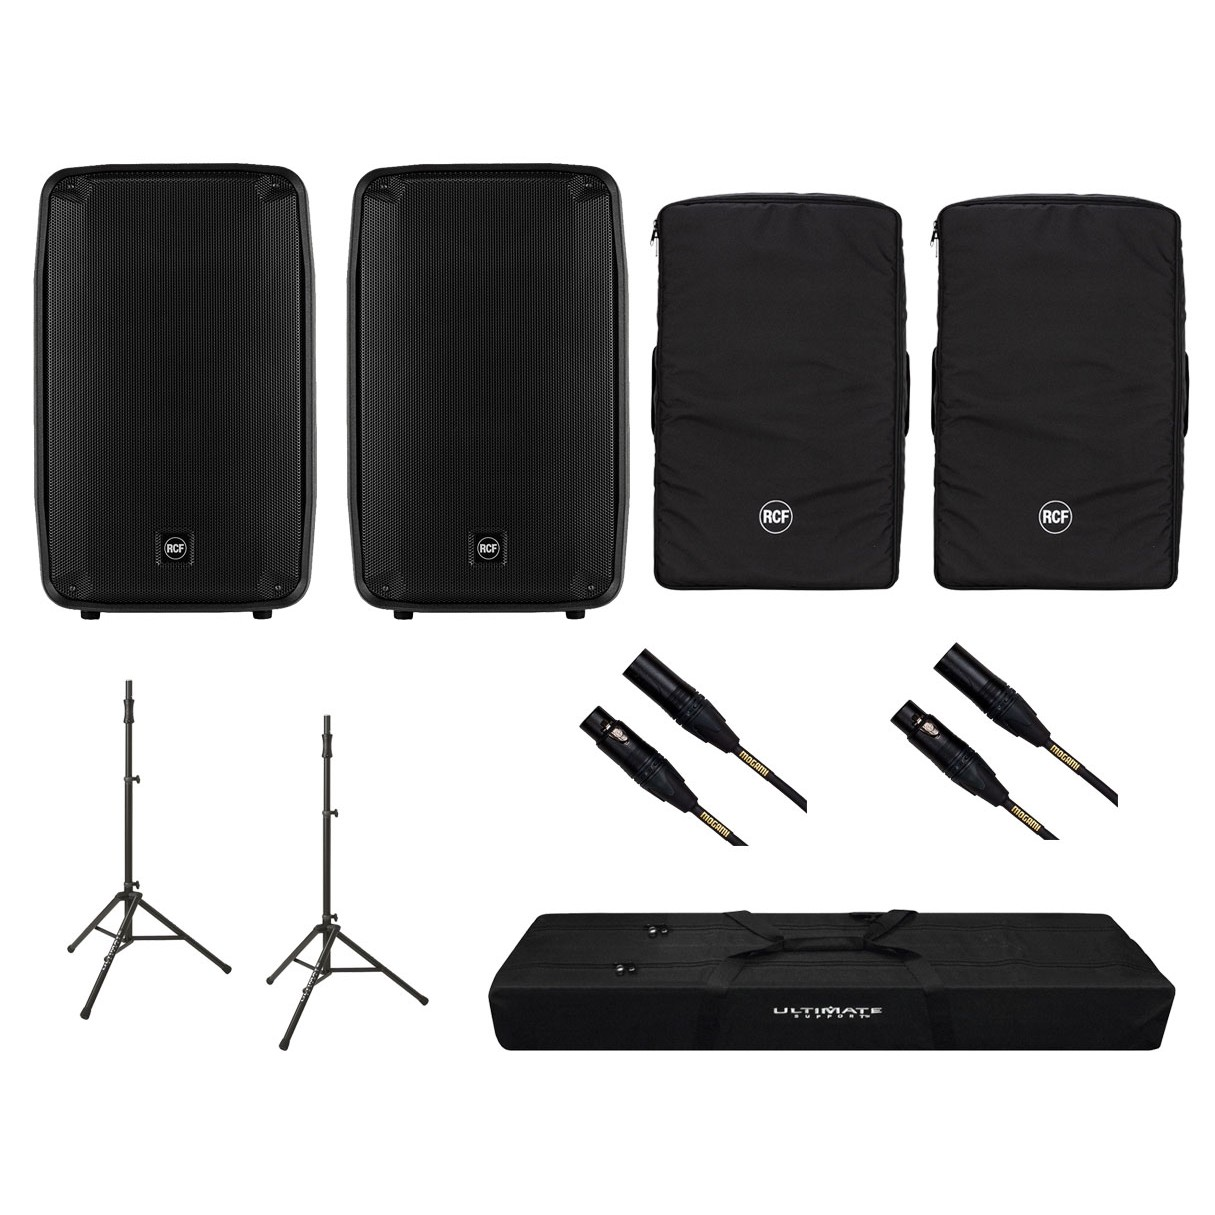 2x RCF HD15-A + Covers + Speaker Stands w/ bag + Mogami Cables